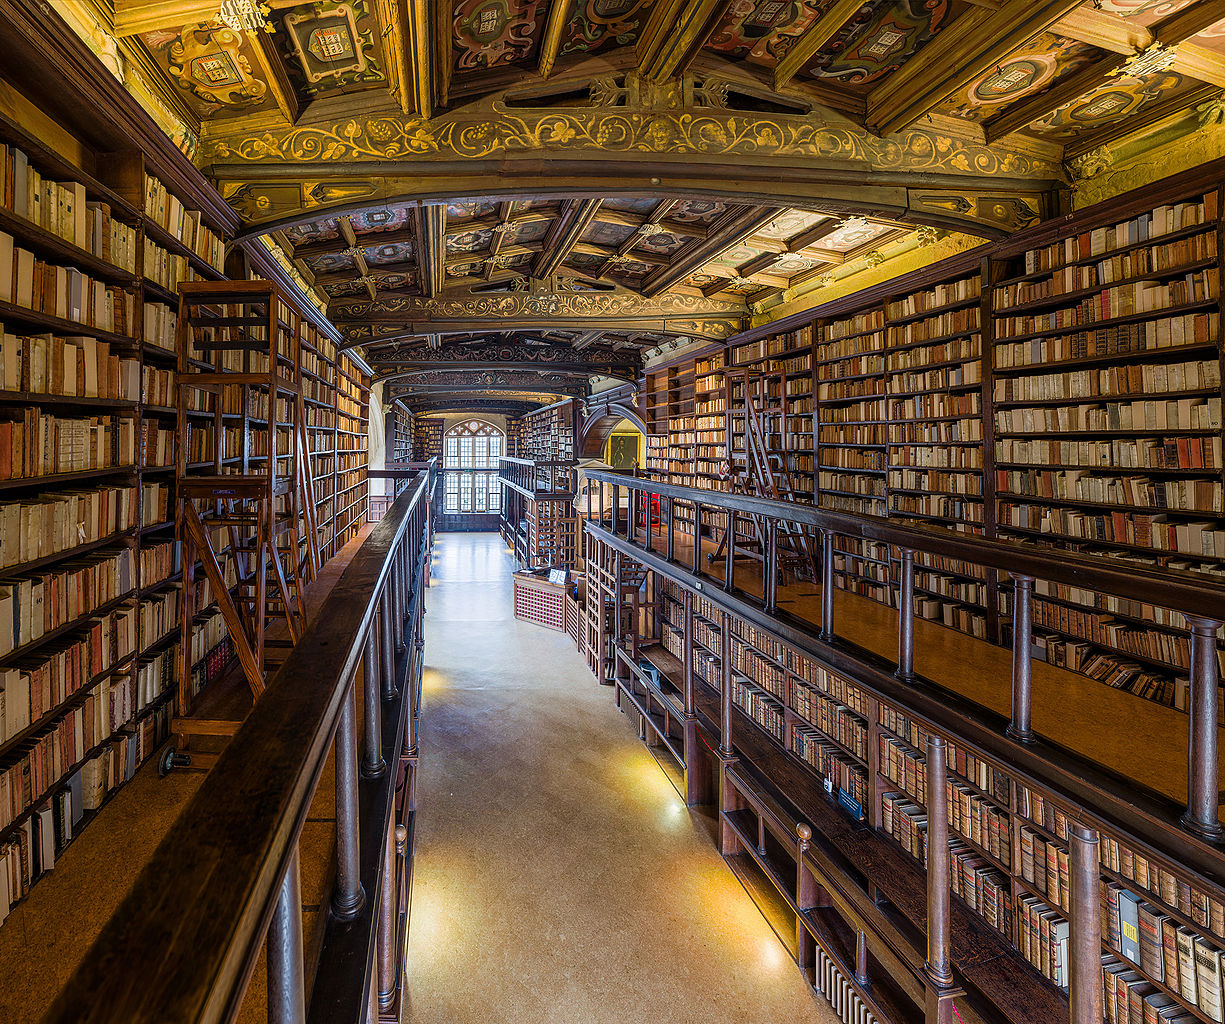 File:Duke Humfrey's Library Interior 5, Bodleian Library ...